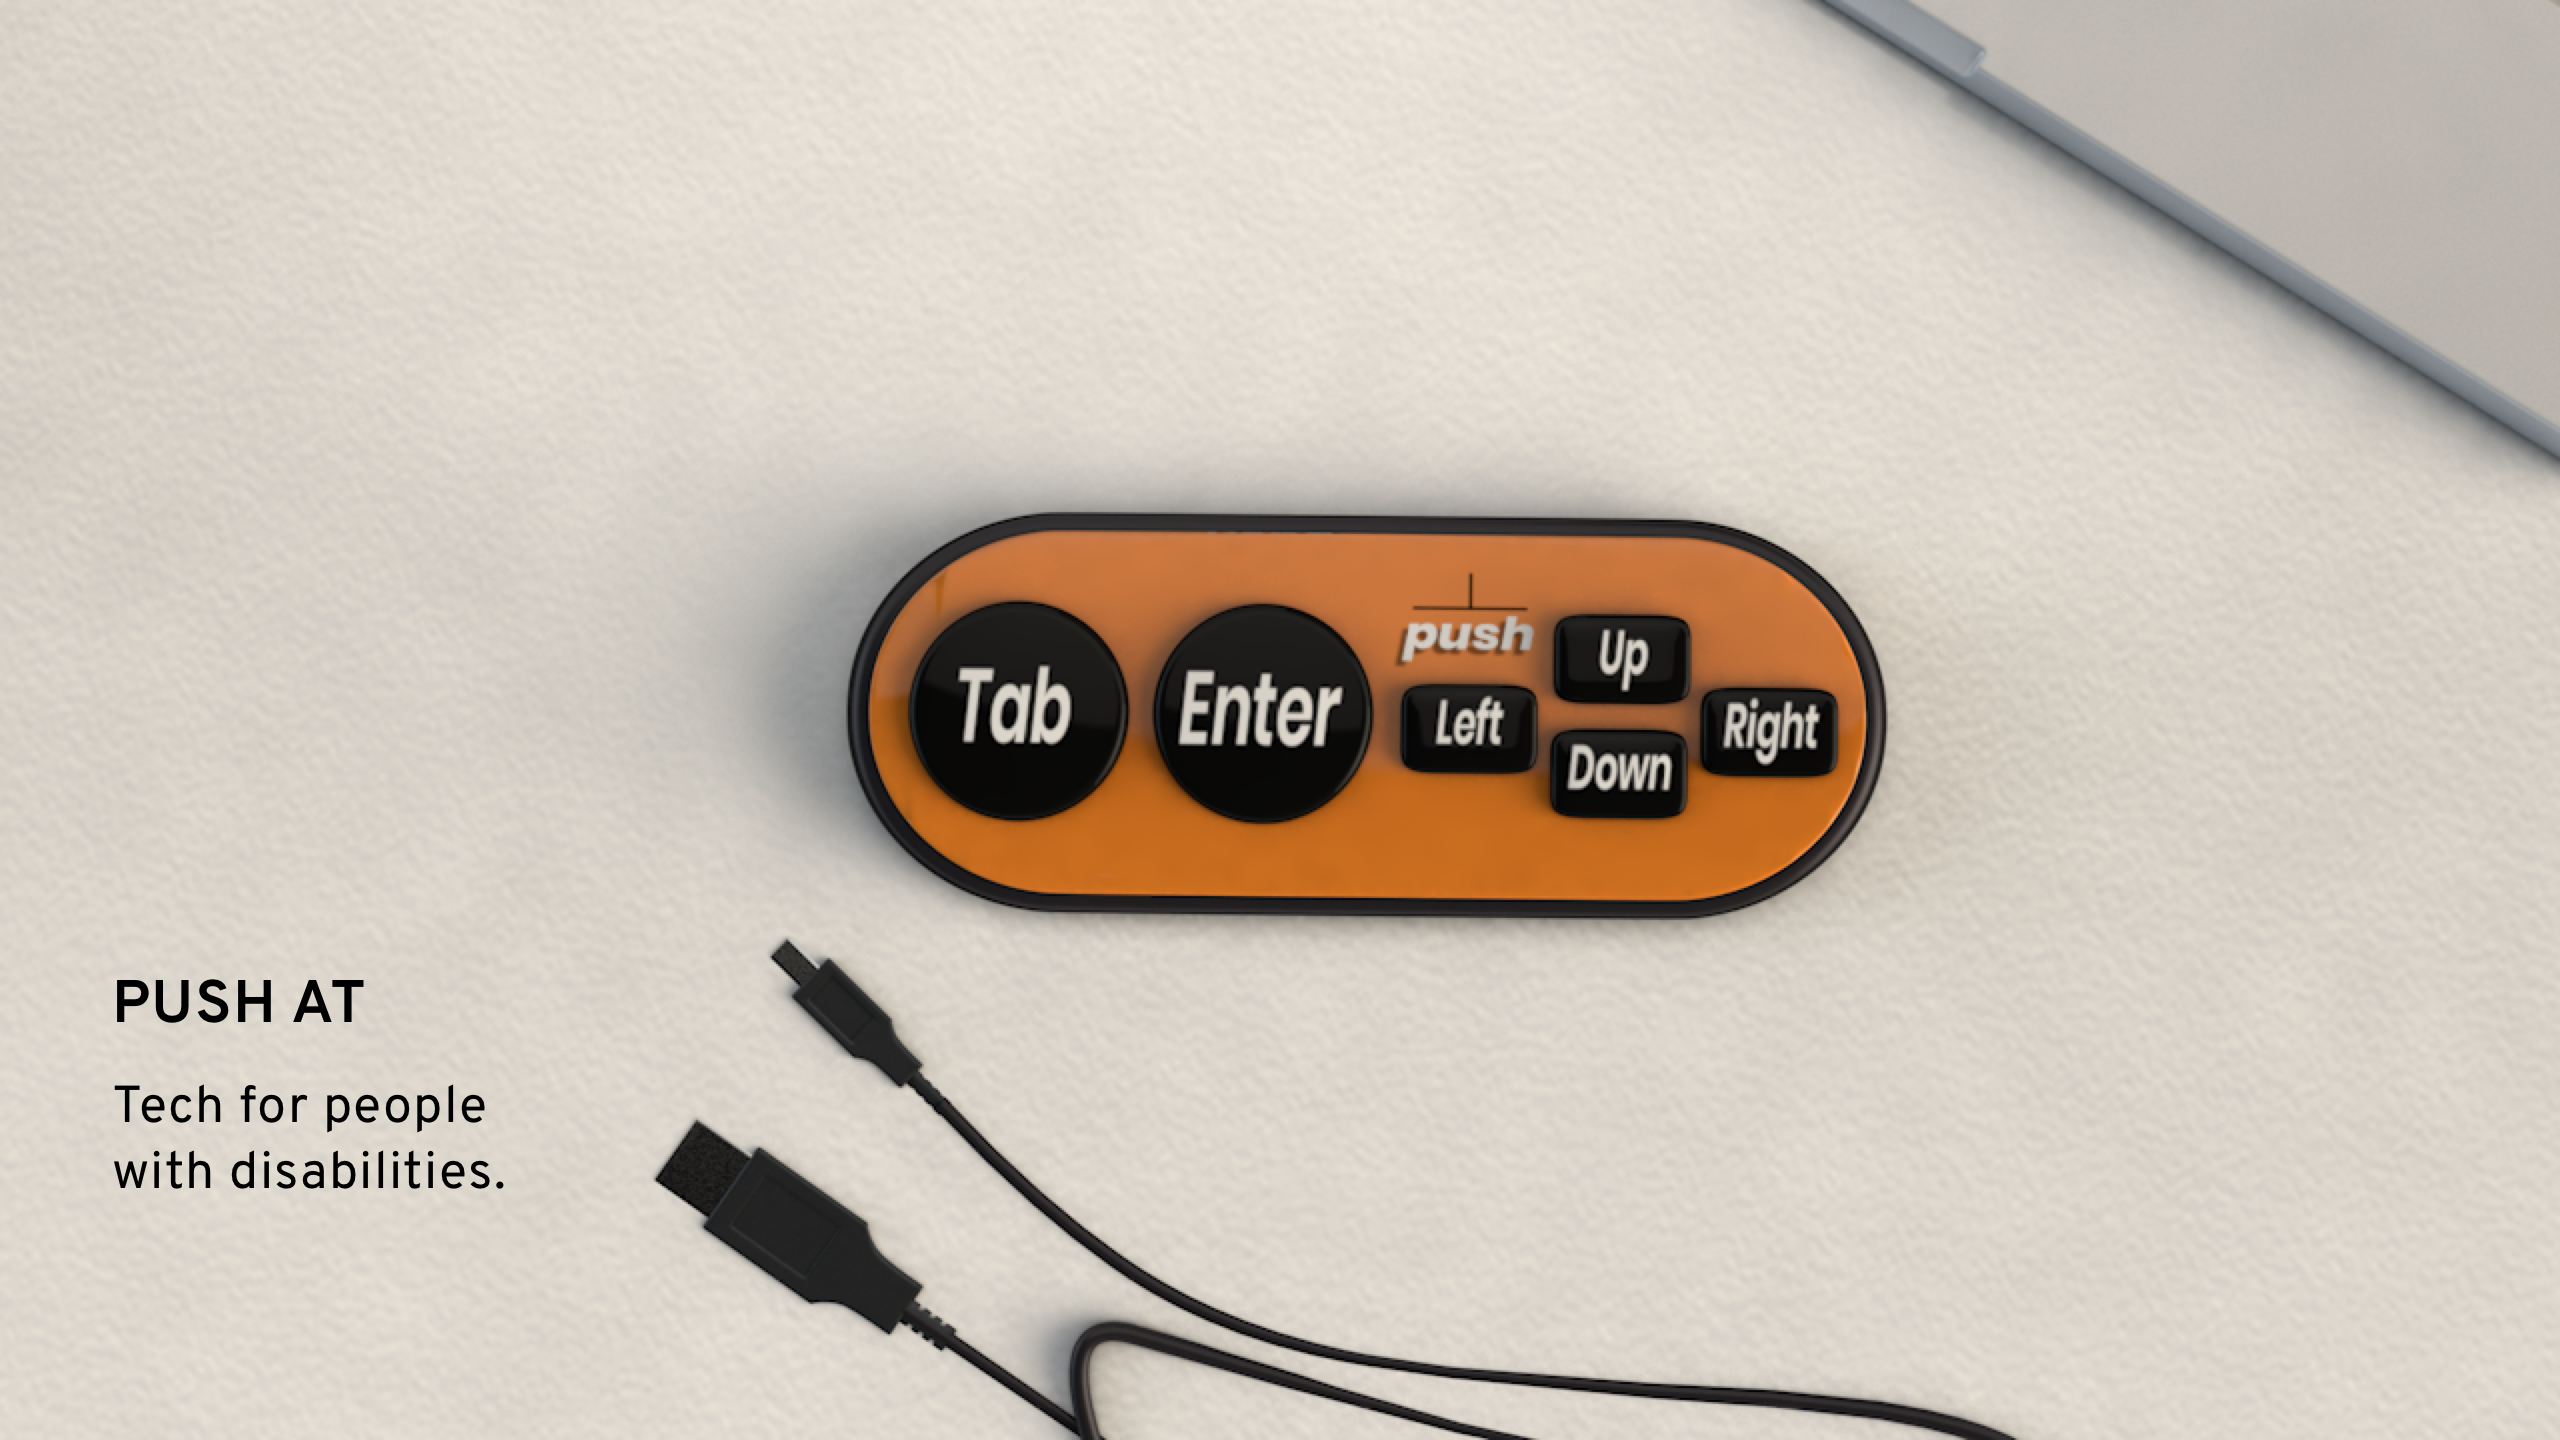 The orange Push device next to a laptop and micro USB chord